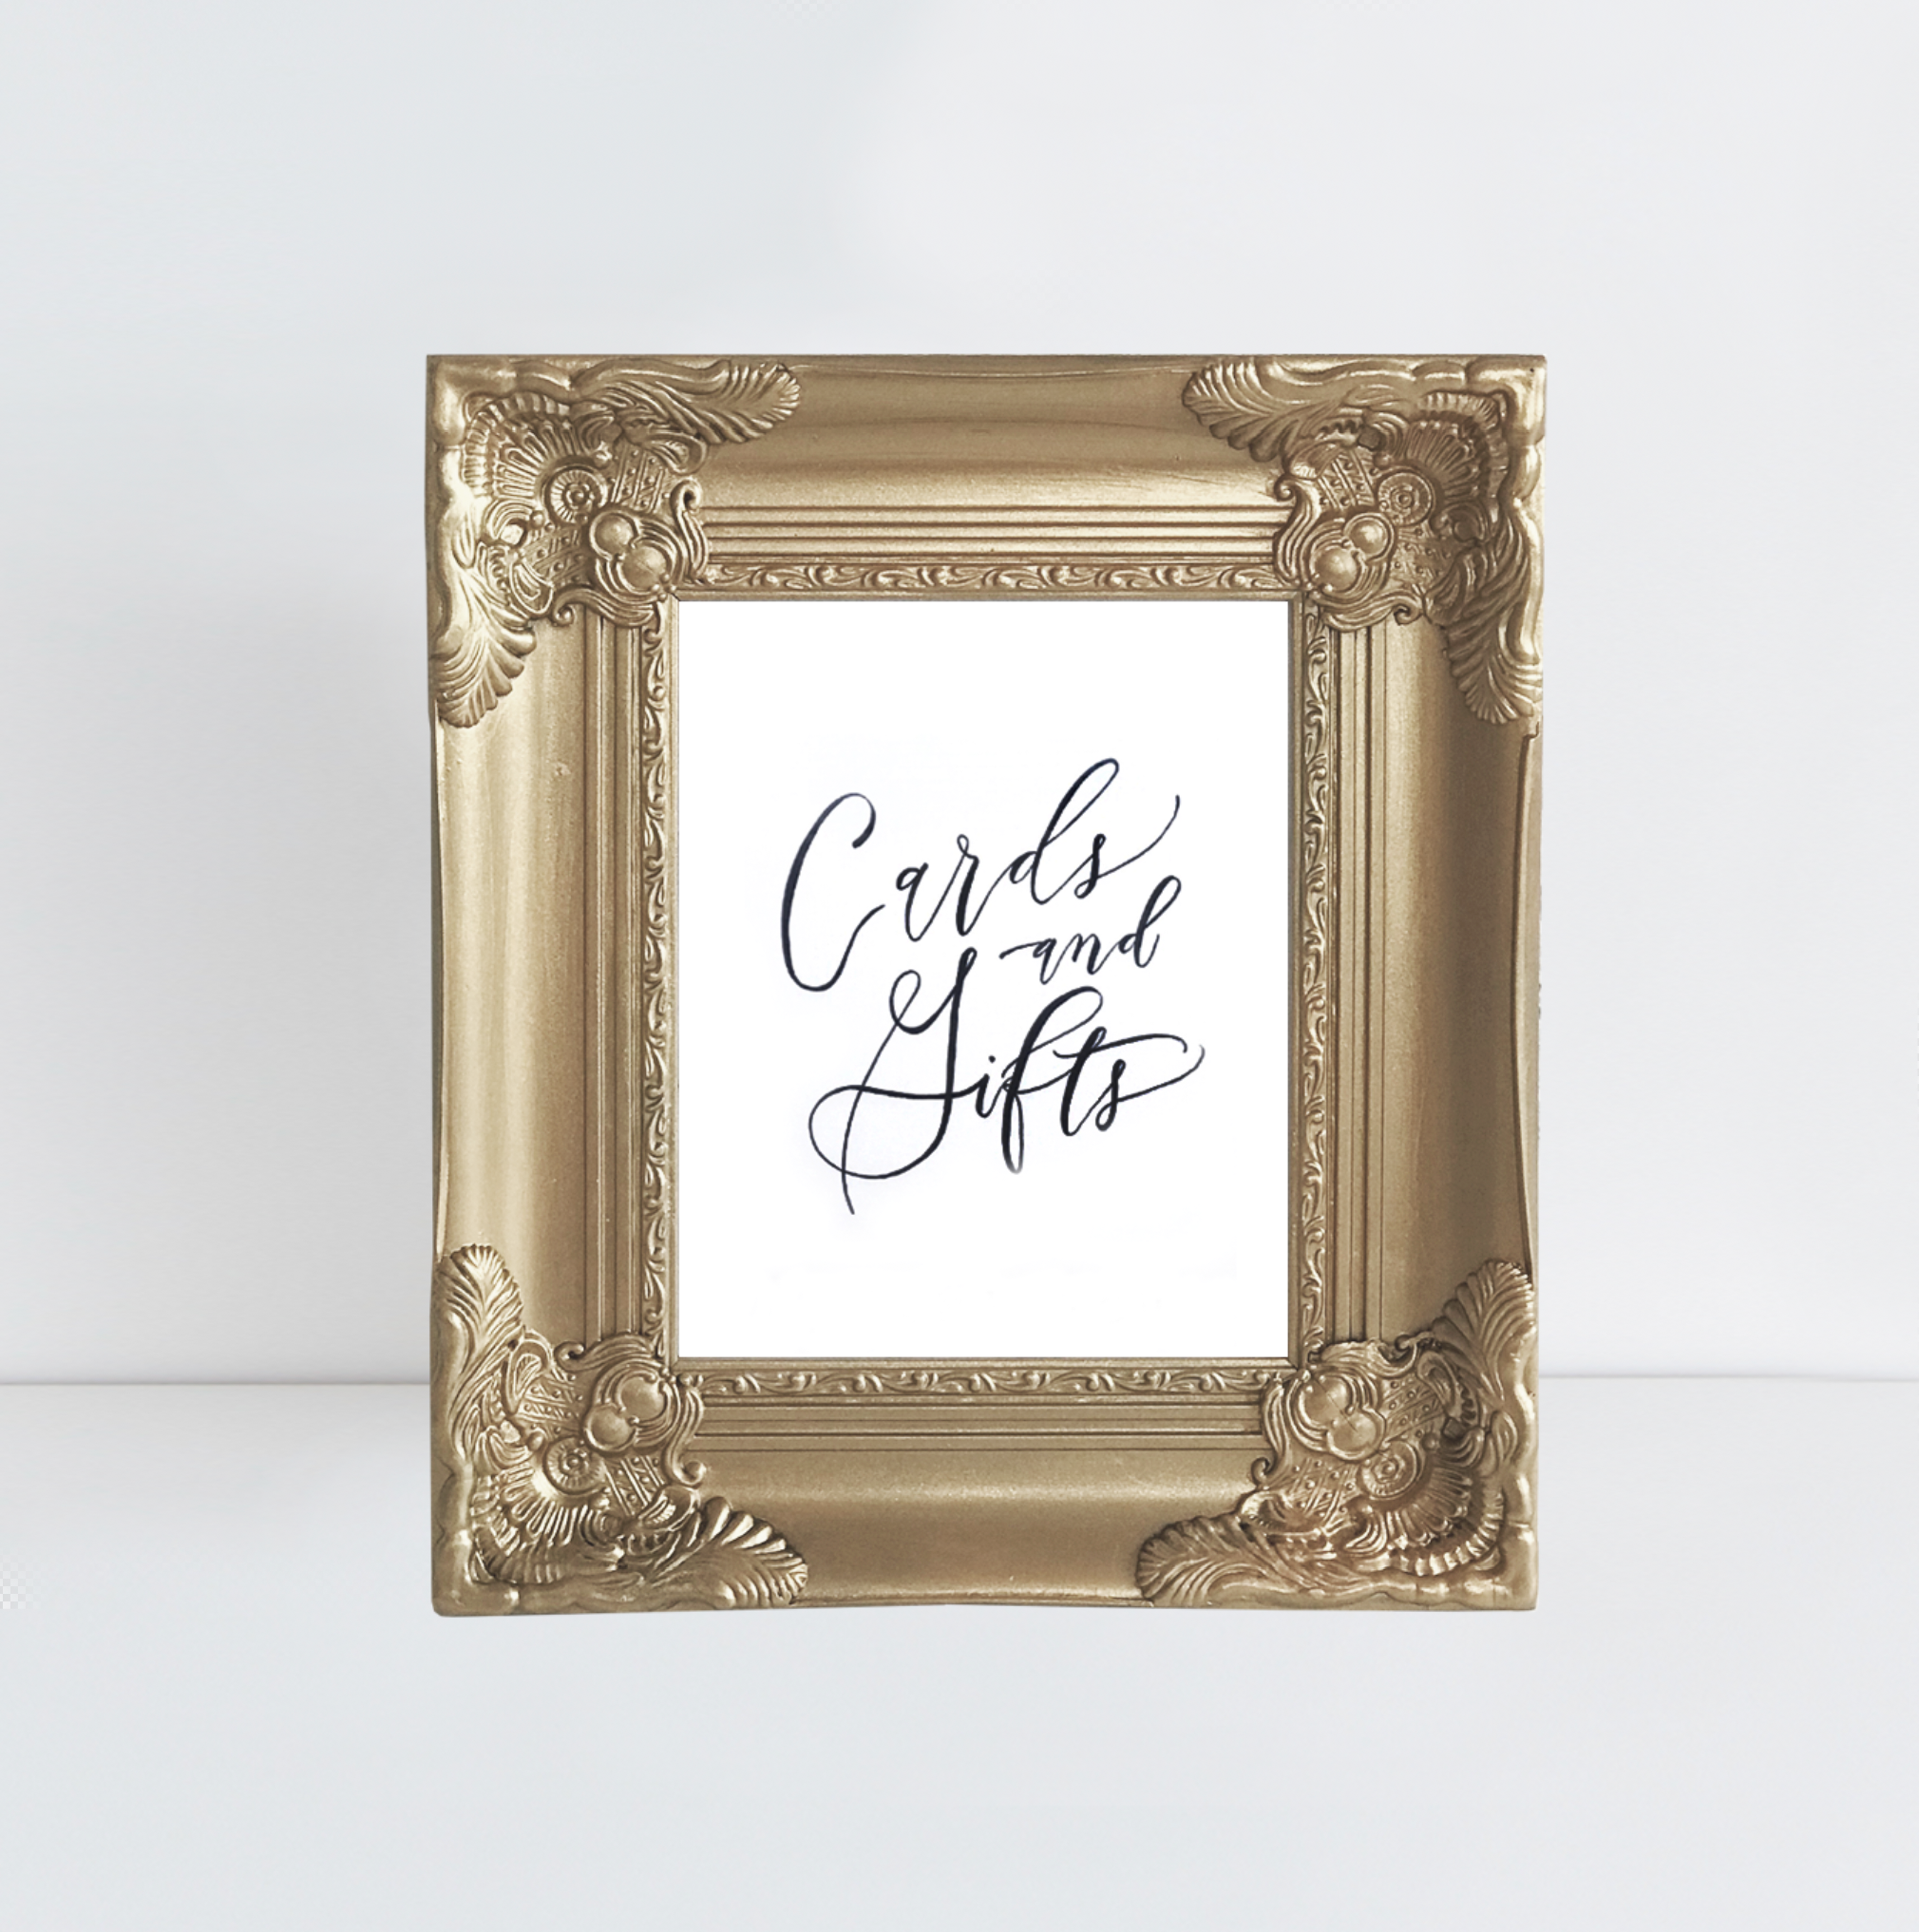 Cards + Gifts in Vintage Gold Frame | Rental